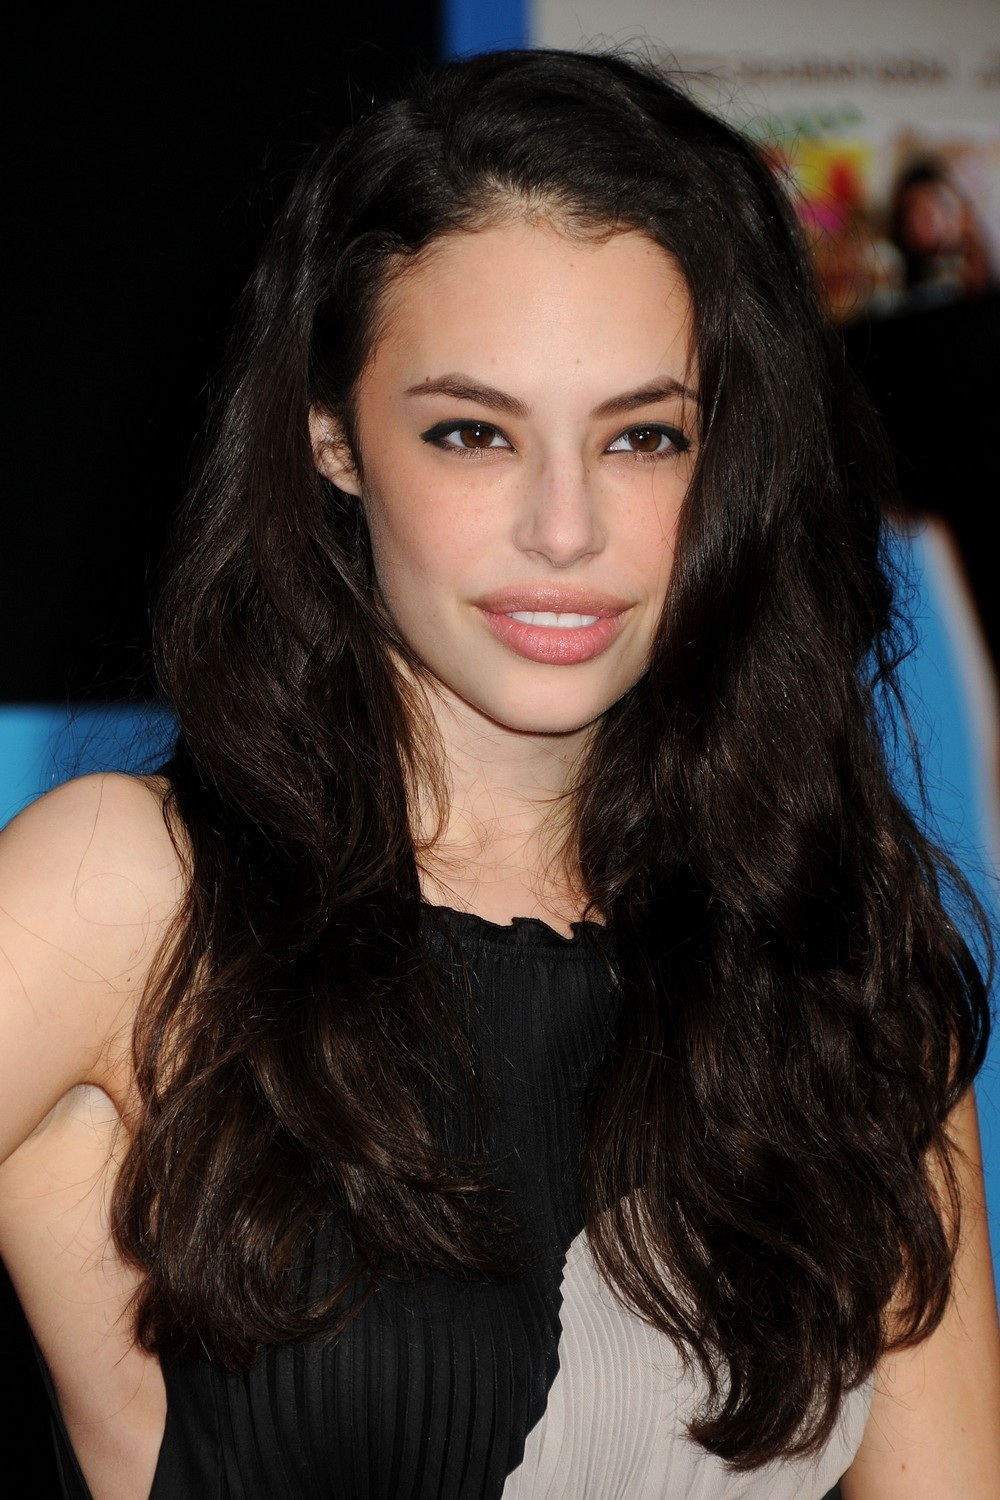 Chloe Bridges Chloe Bridges new foto